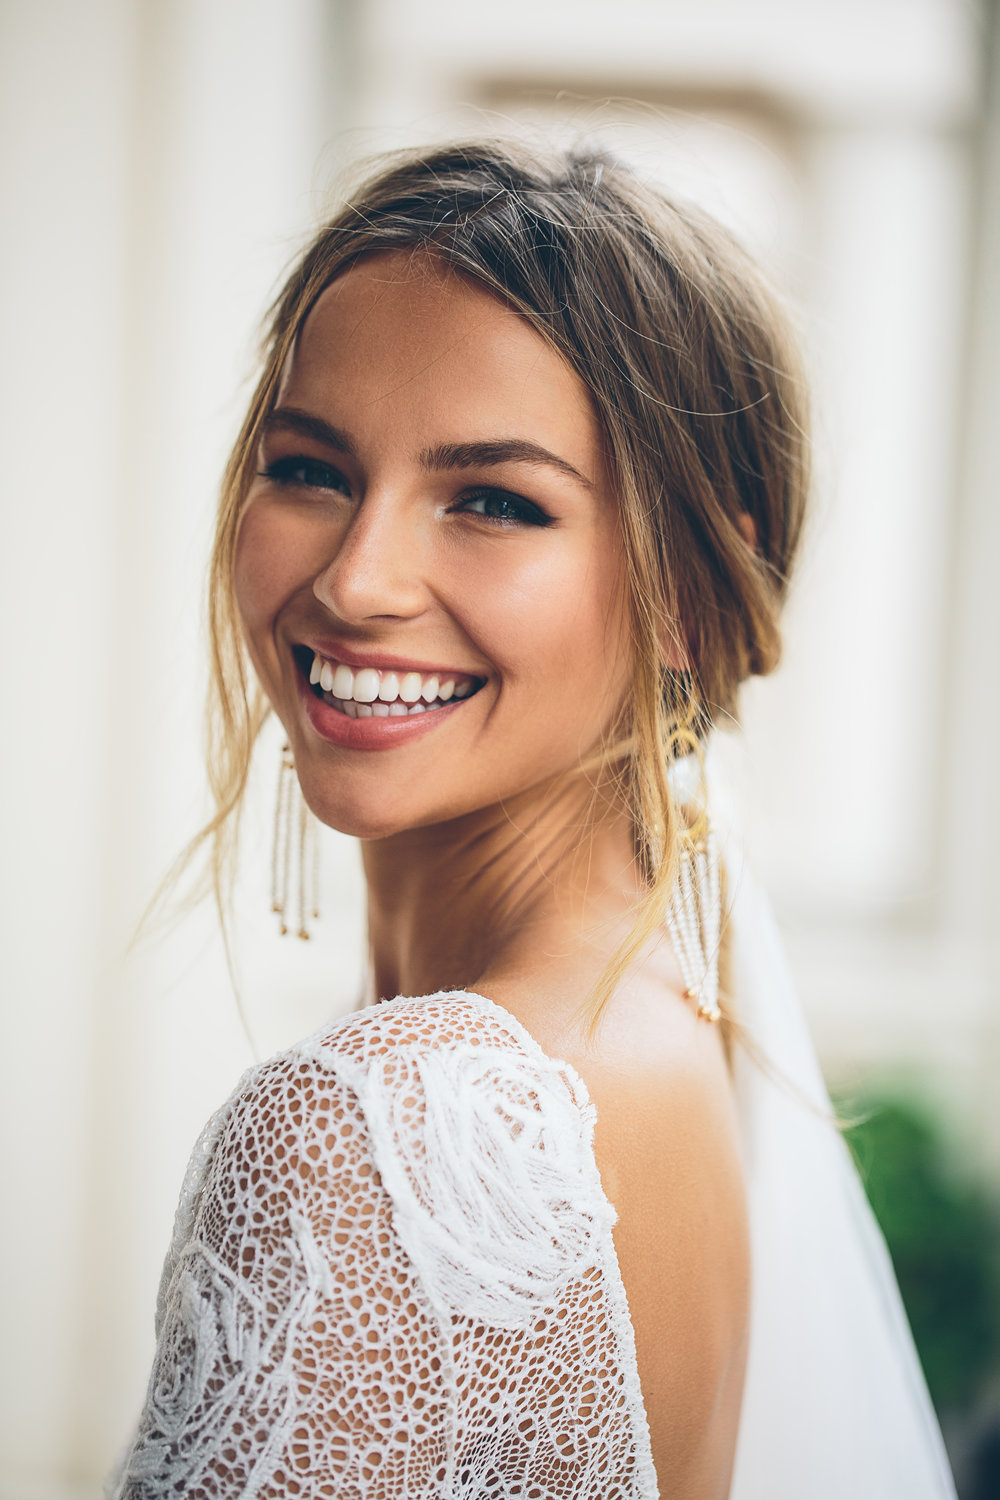 Zoe Cornwell Makeup - Knot Your Average Bride - MUA - The Wedding Squad - Bridal Makeup - Wedding Makeup